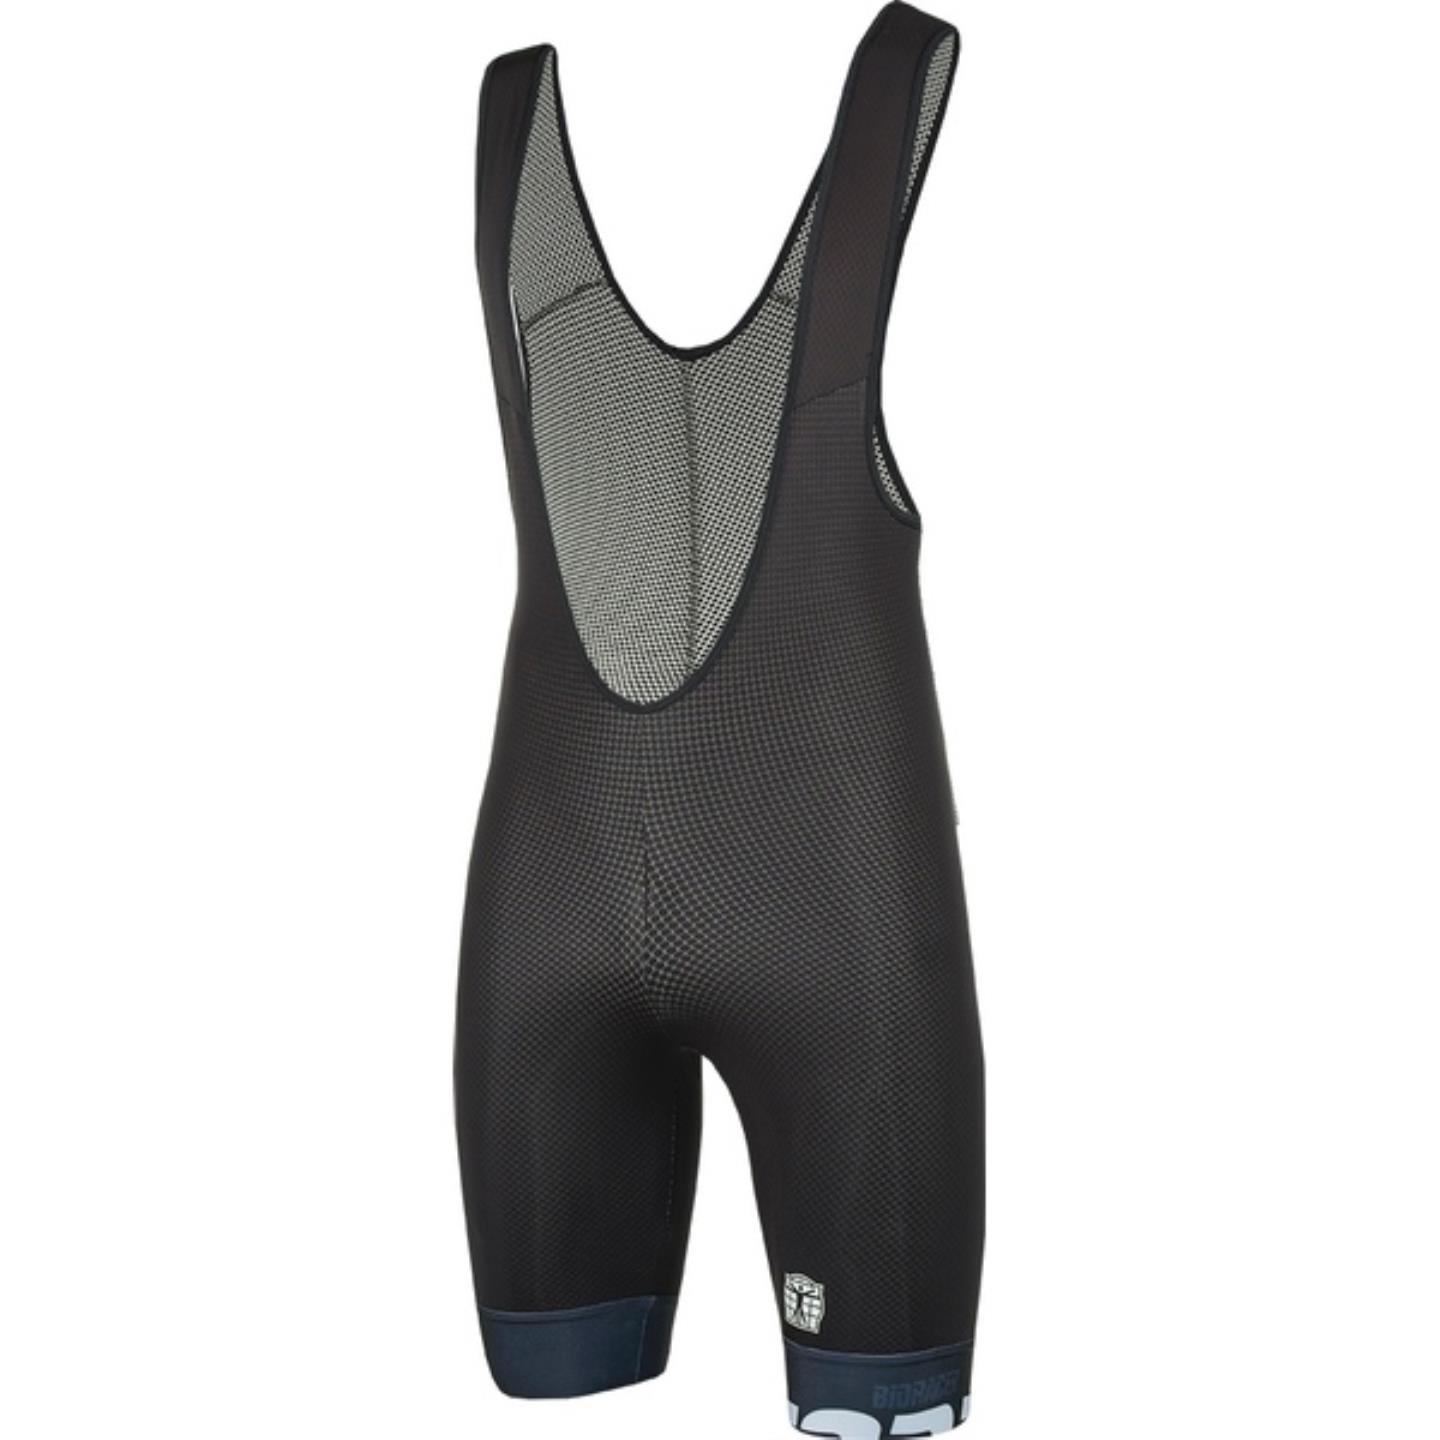 Bioracer Race Proven One Cold Bib-Short